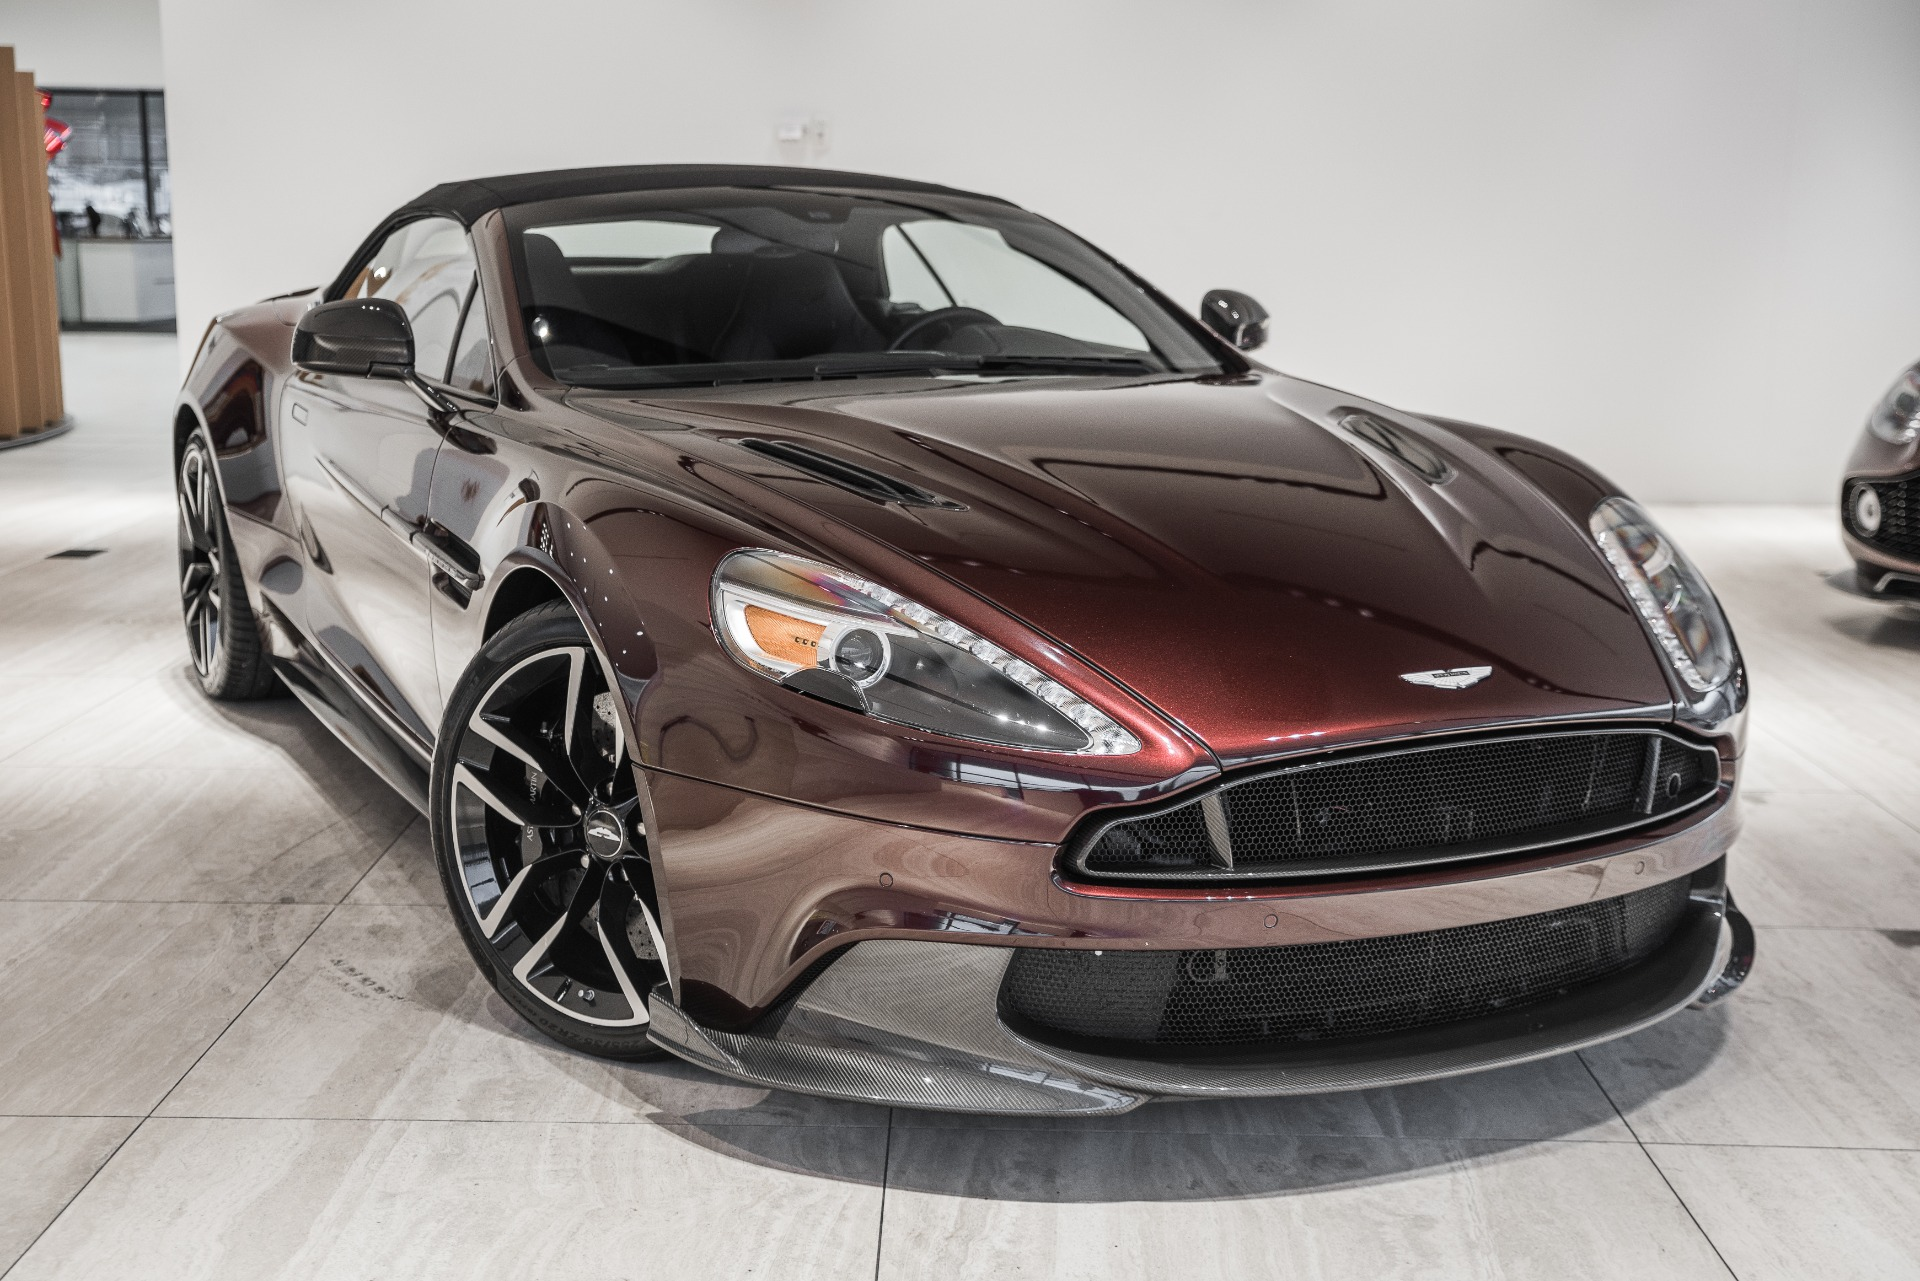 2018 aston martin vanquish volante stock 8nk03742 for sale near vienna va va aston martin. Black Bedroom Furniture Sets. Home Design Ideas